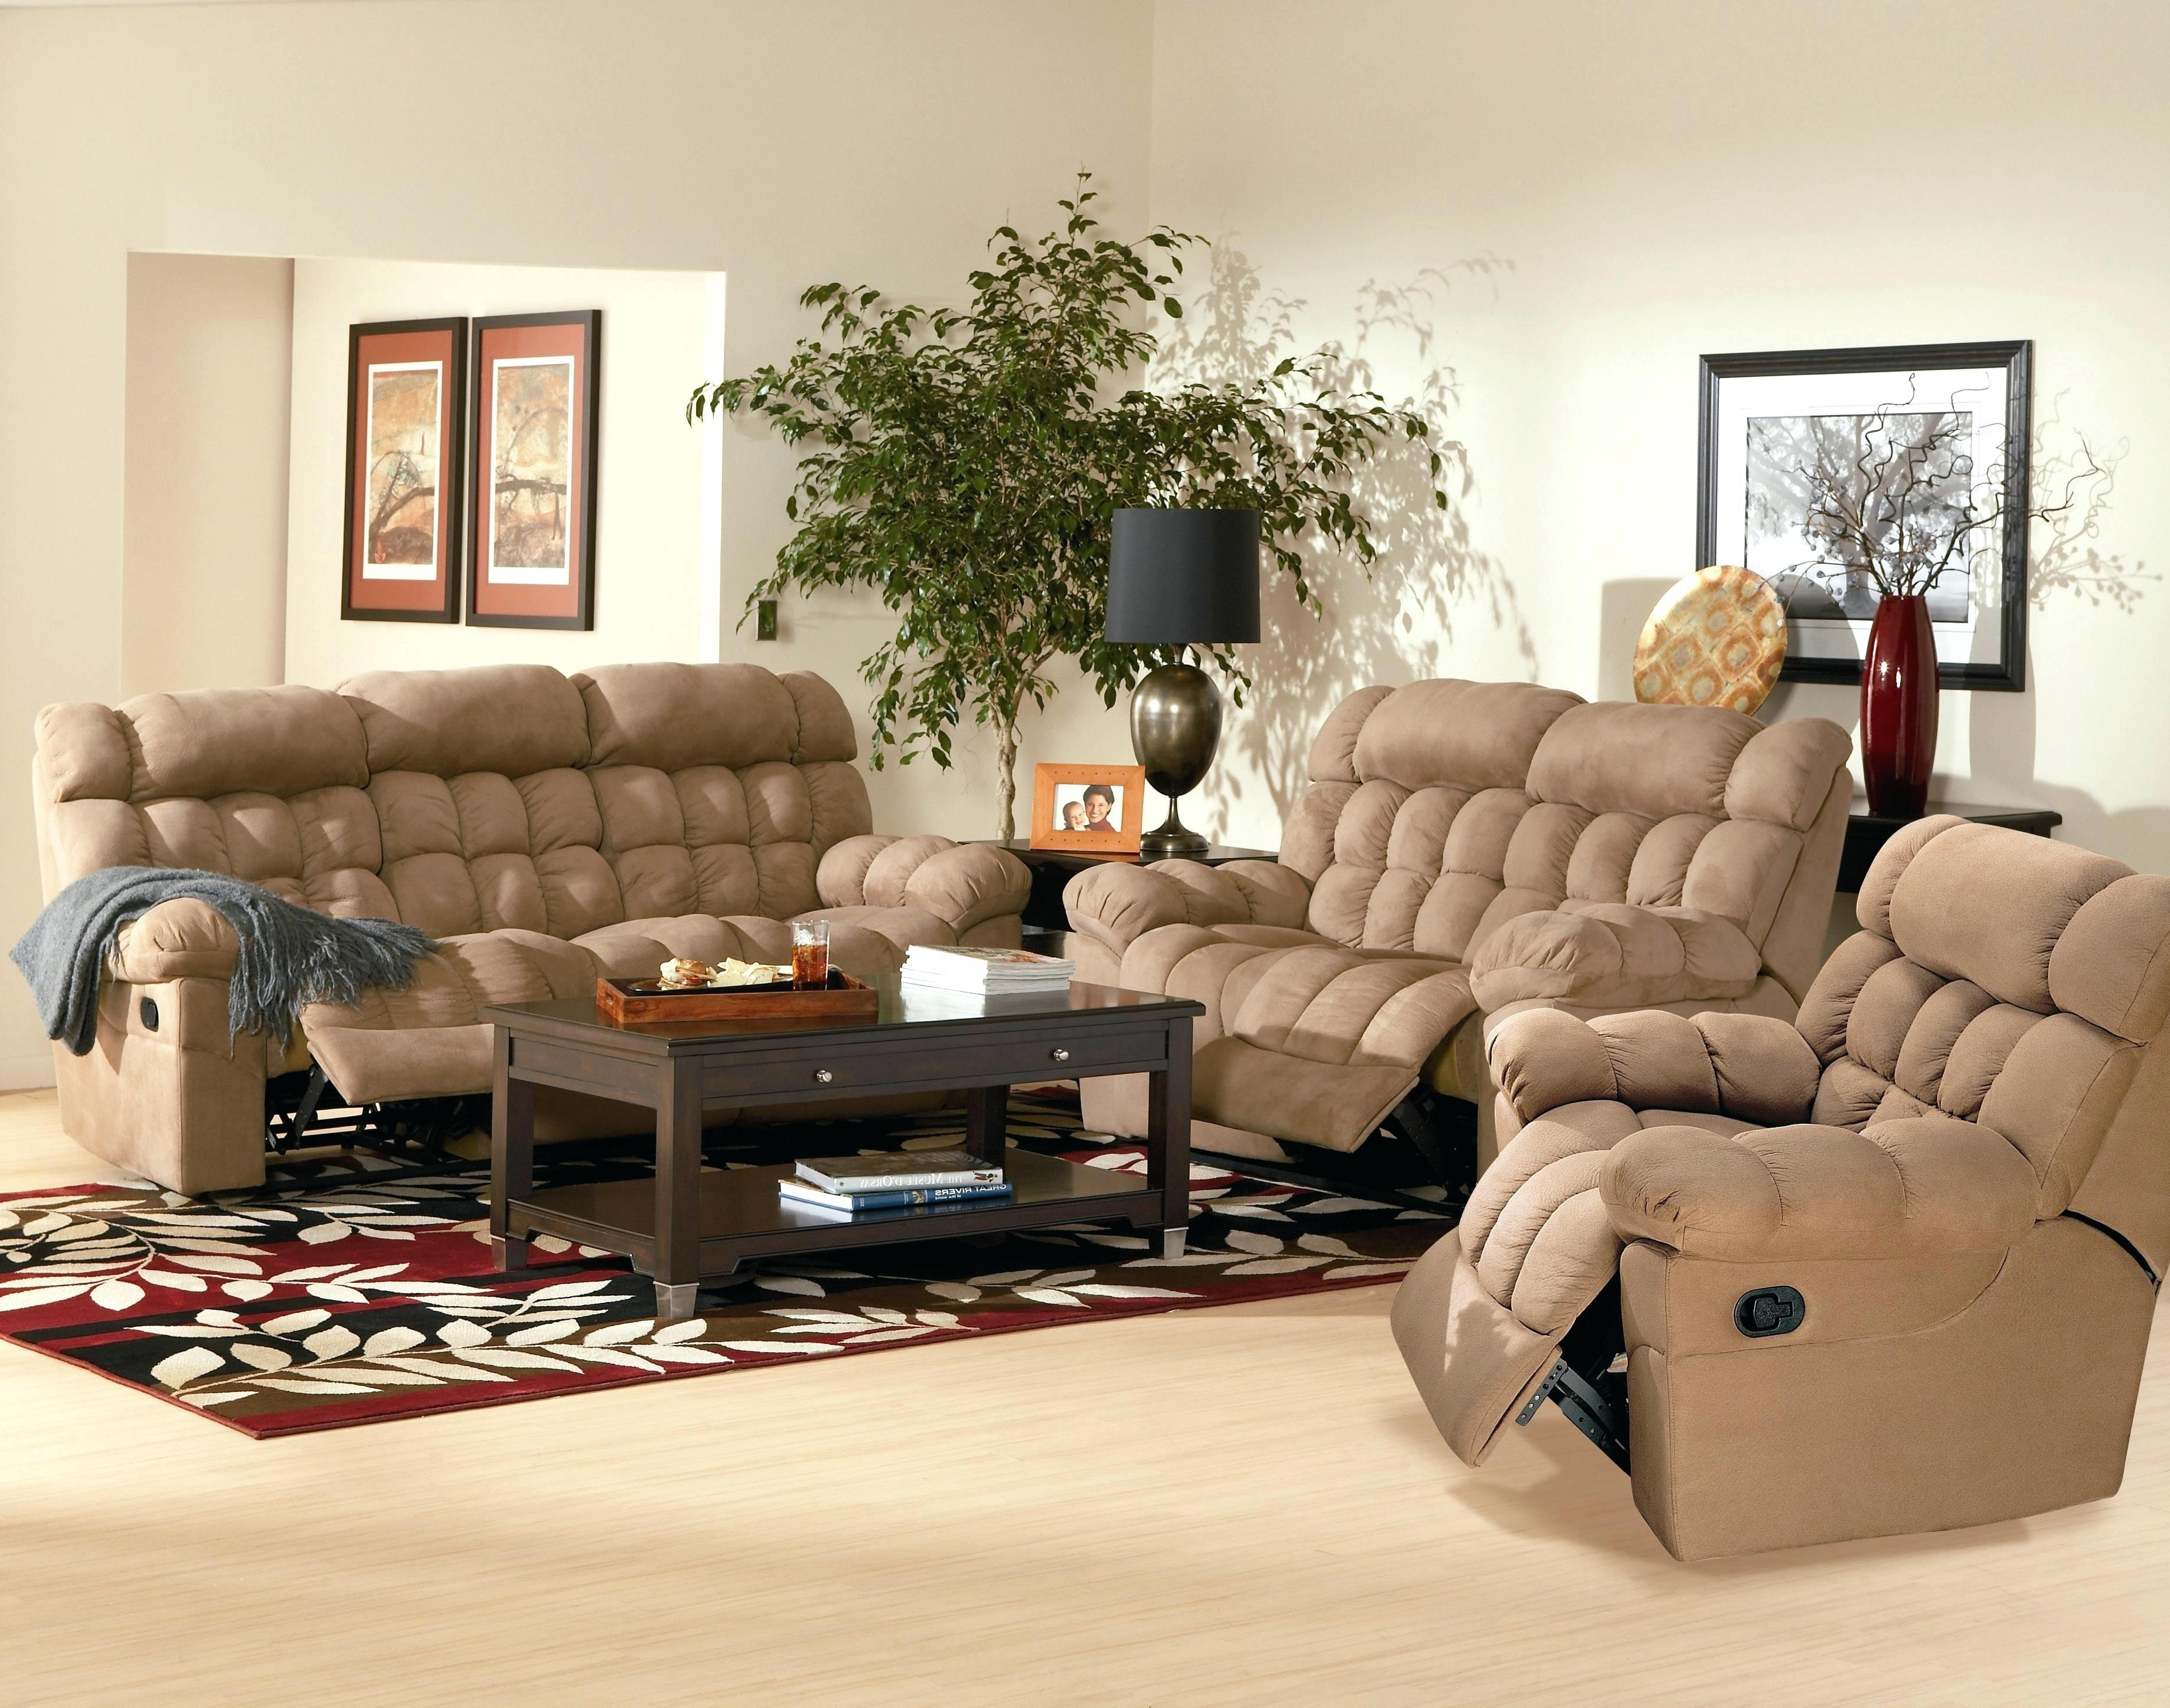 Fashionable Overstuffed Sofa – Jasonatavastrealty With Regard To Overstuffed Sofas And Chairs (View 7 of 20)